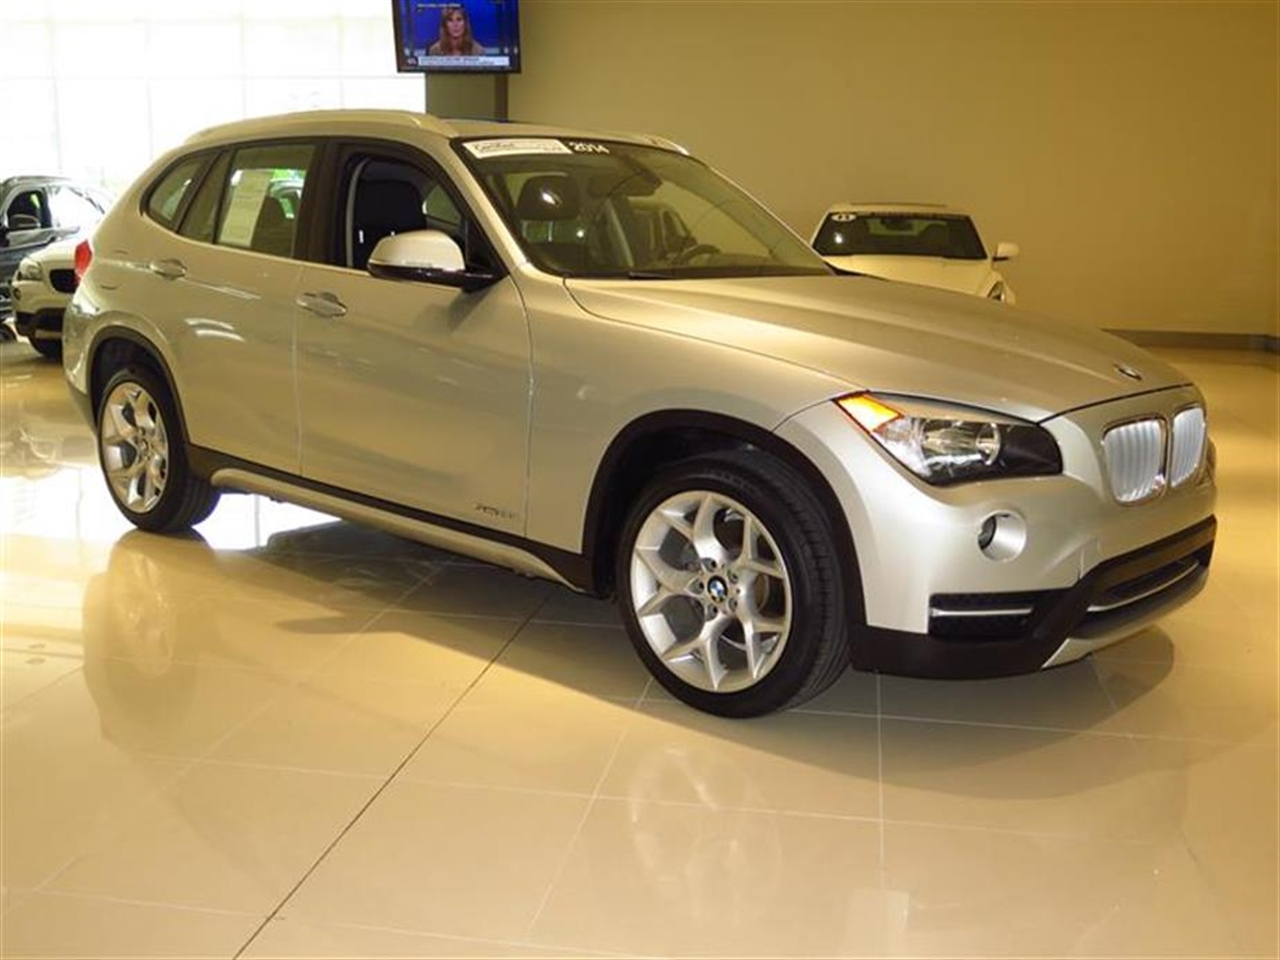 2014 BMW X1 RWD 4dr sDrive28i 10585 miles 2 Seatback Storage Pockets 3 12V DC Power Outlets LEA